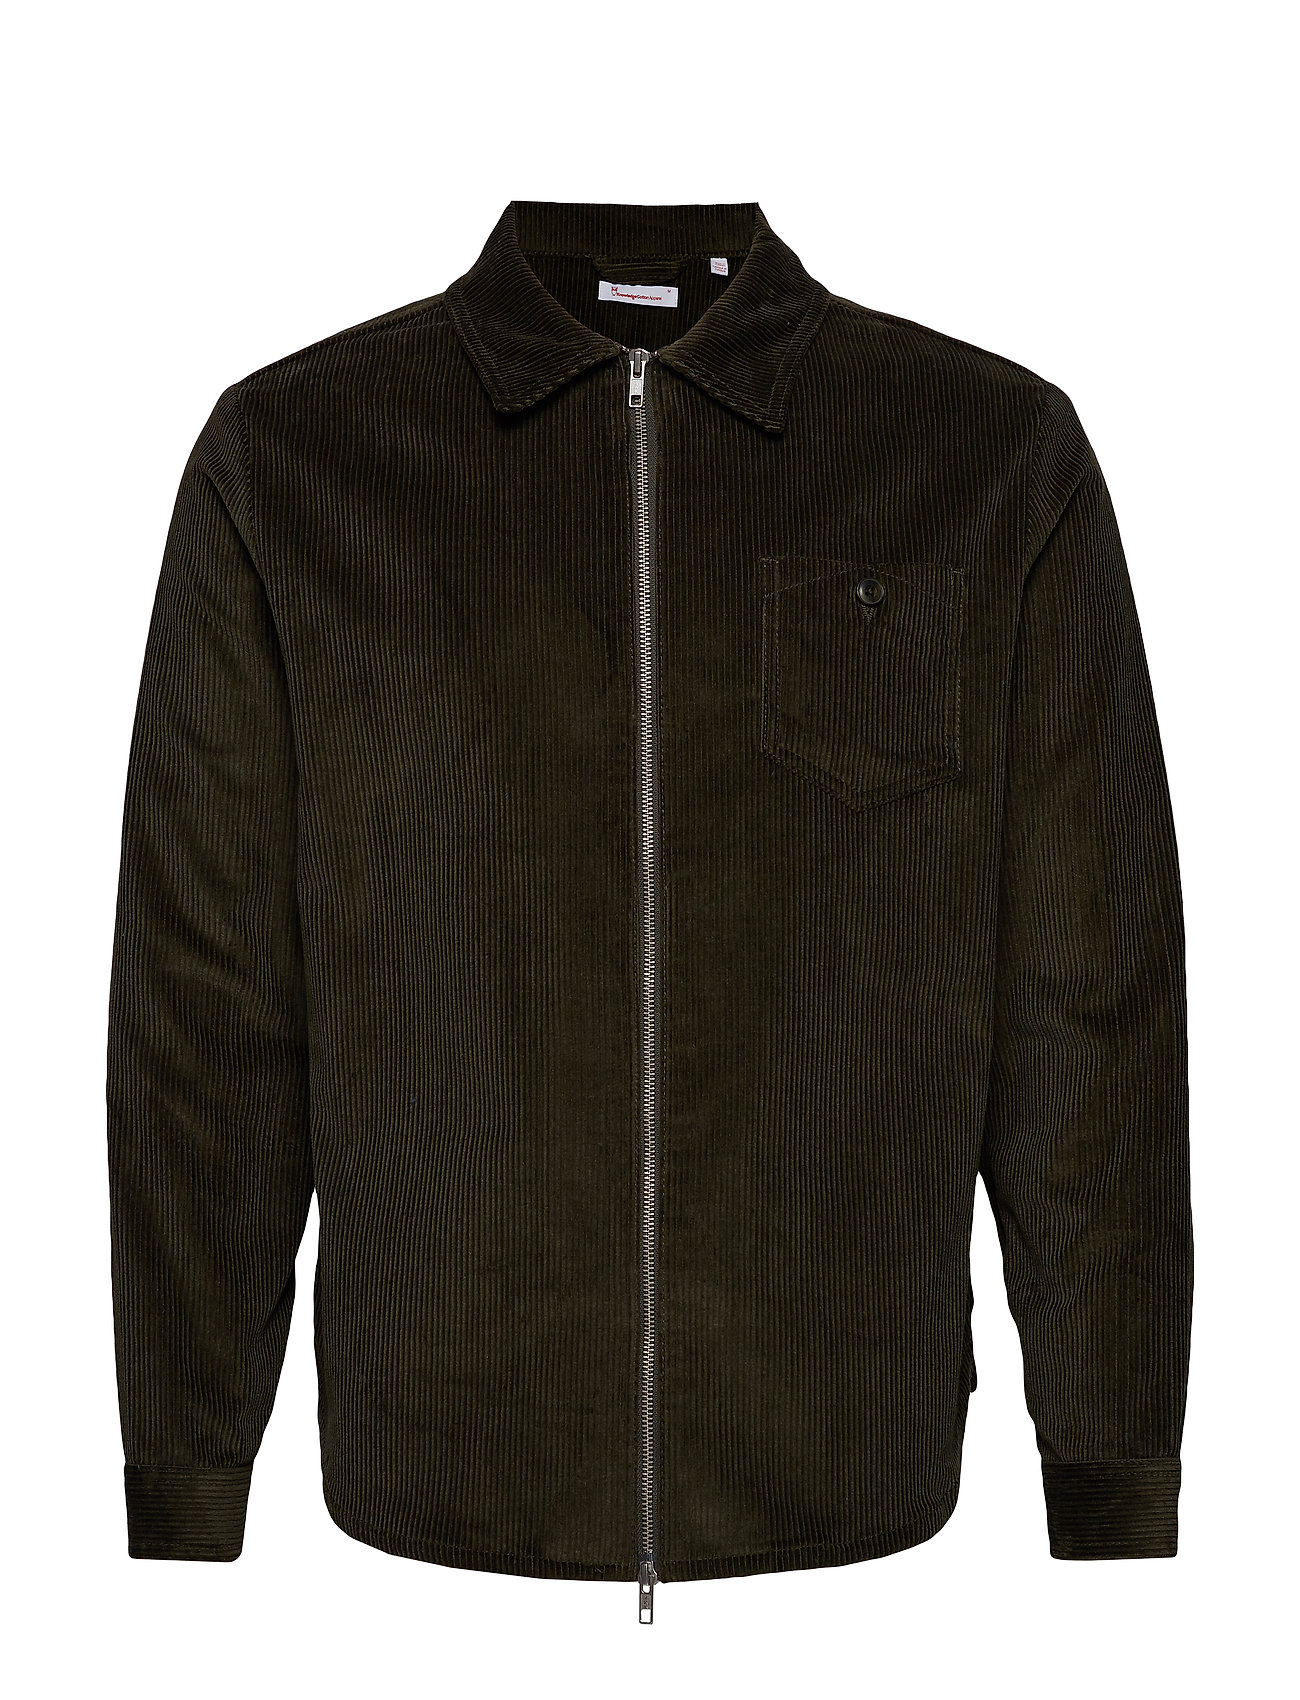 Knowledge Cotton Apparel 8 Wales Corduroy overshirt - GOTS/V - FORREST NIGHT